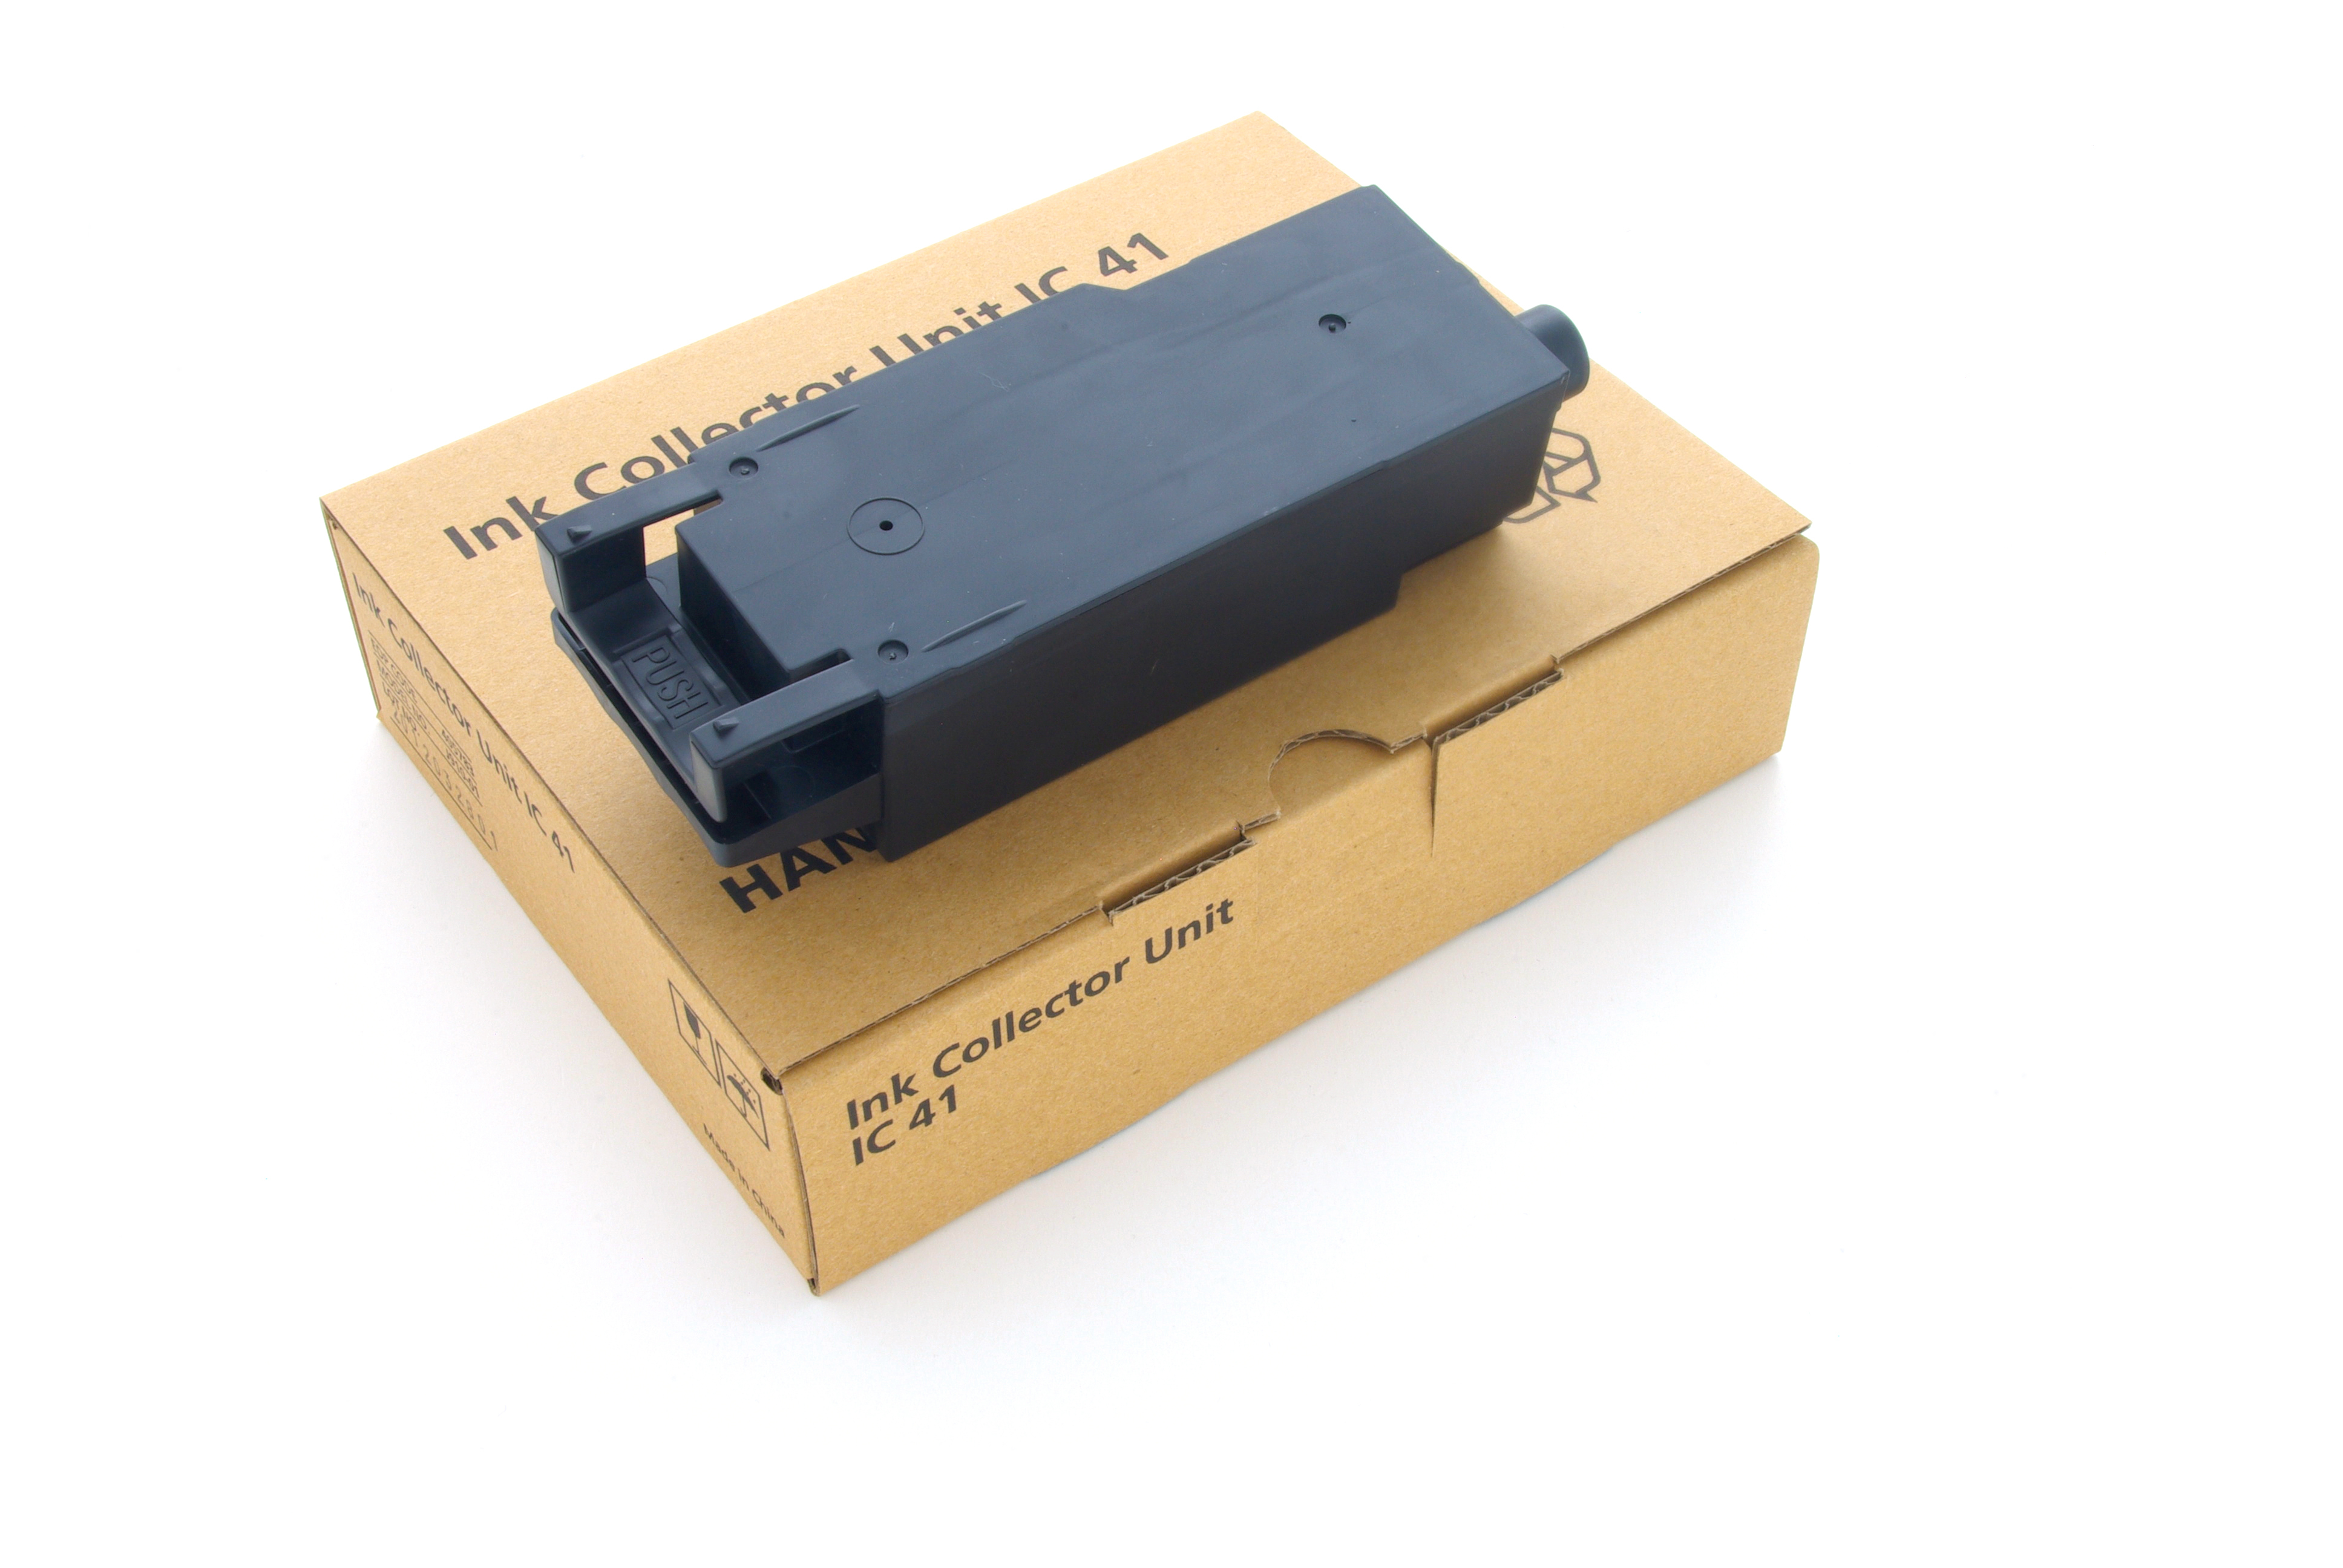 405783 ricoh Ricoh Ink Collector Unit Ic41 - AD01